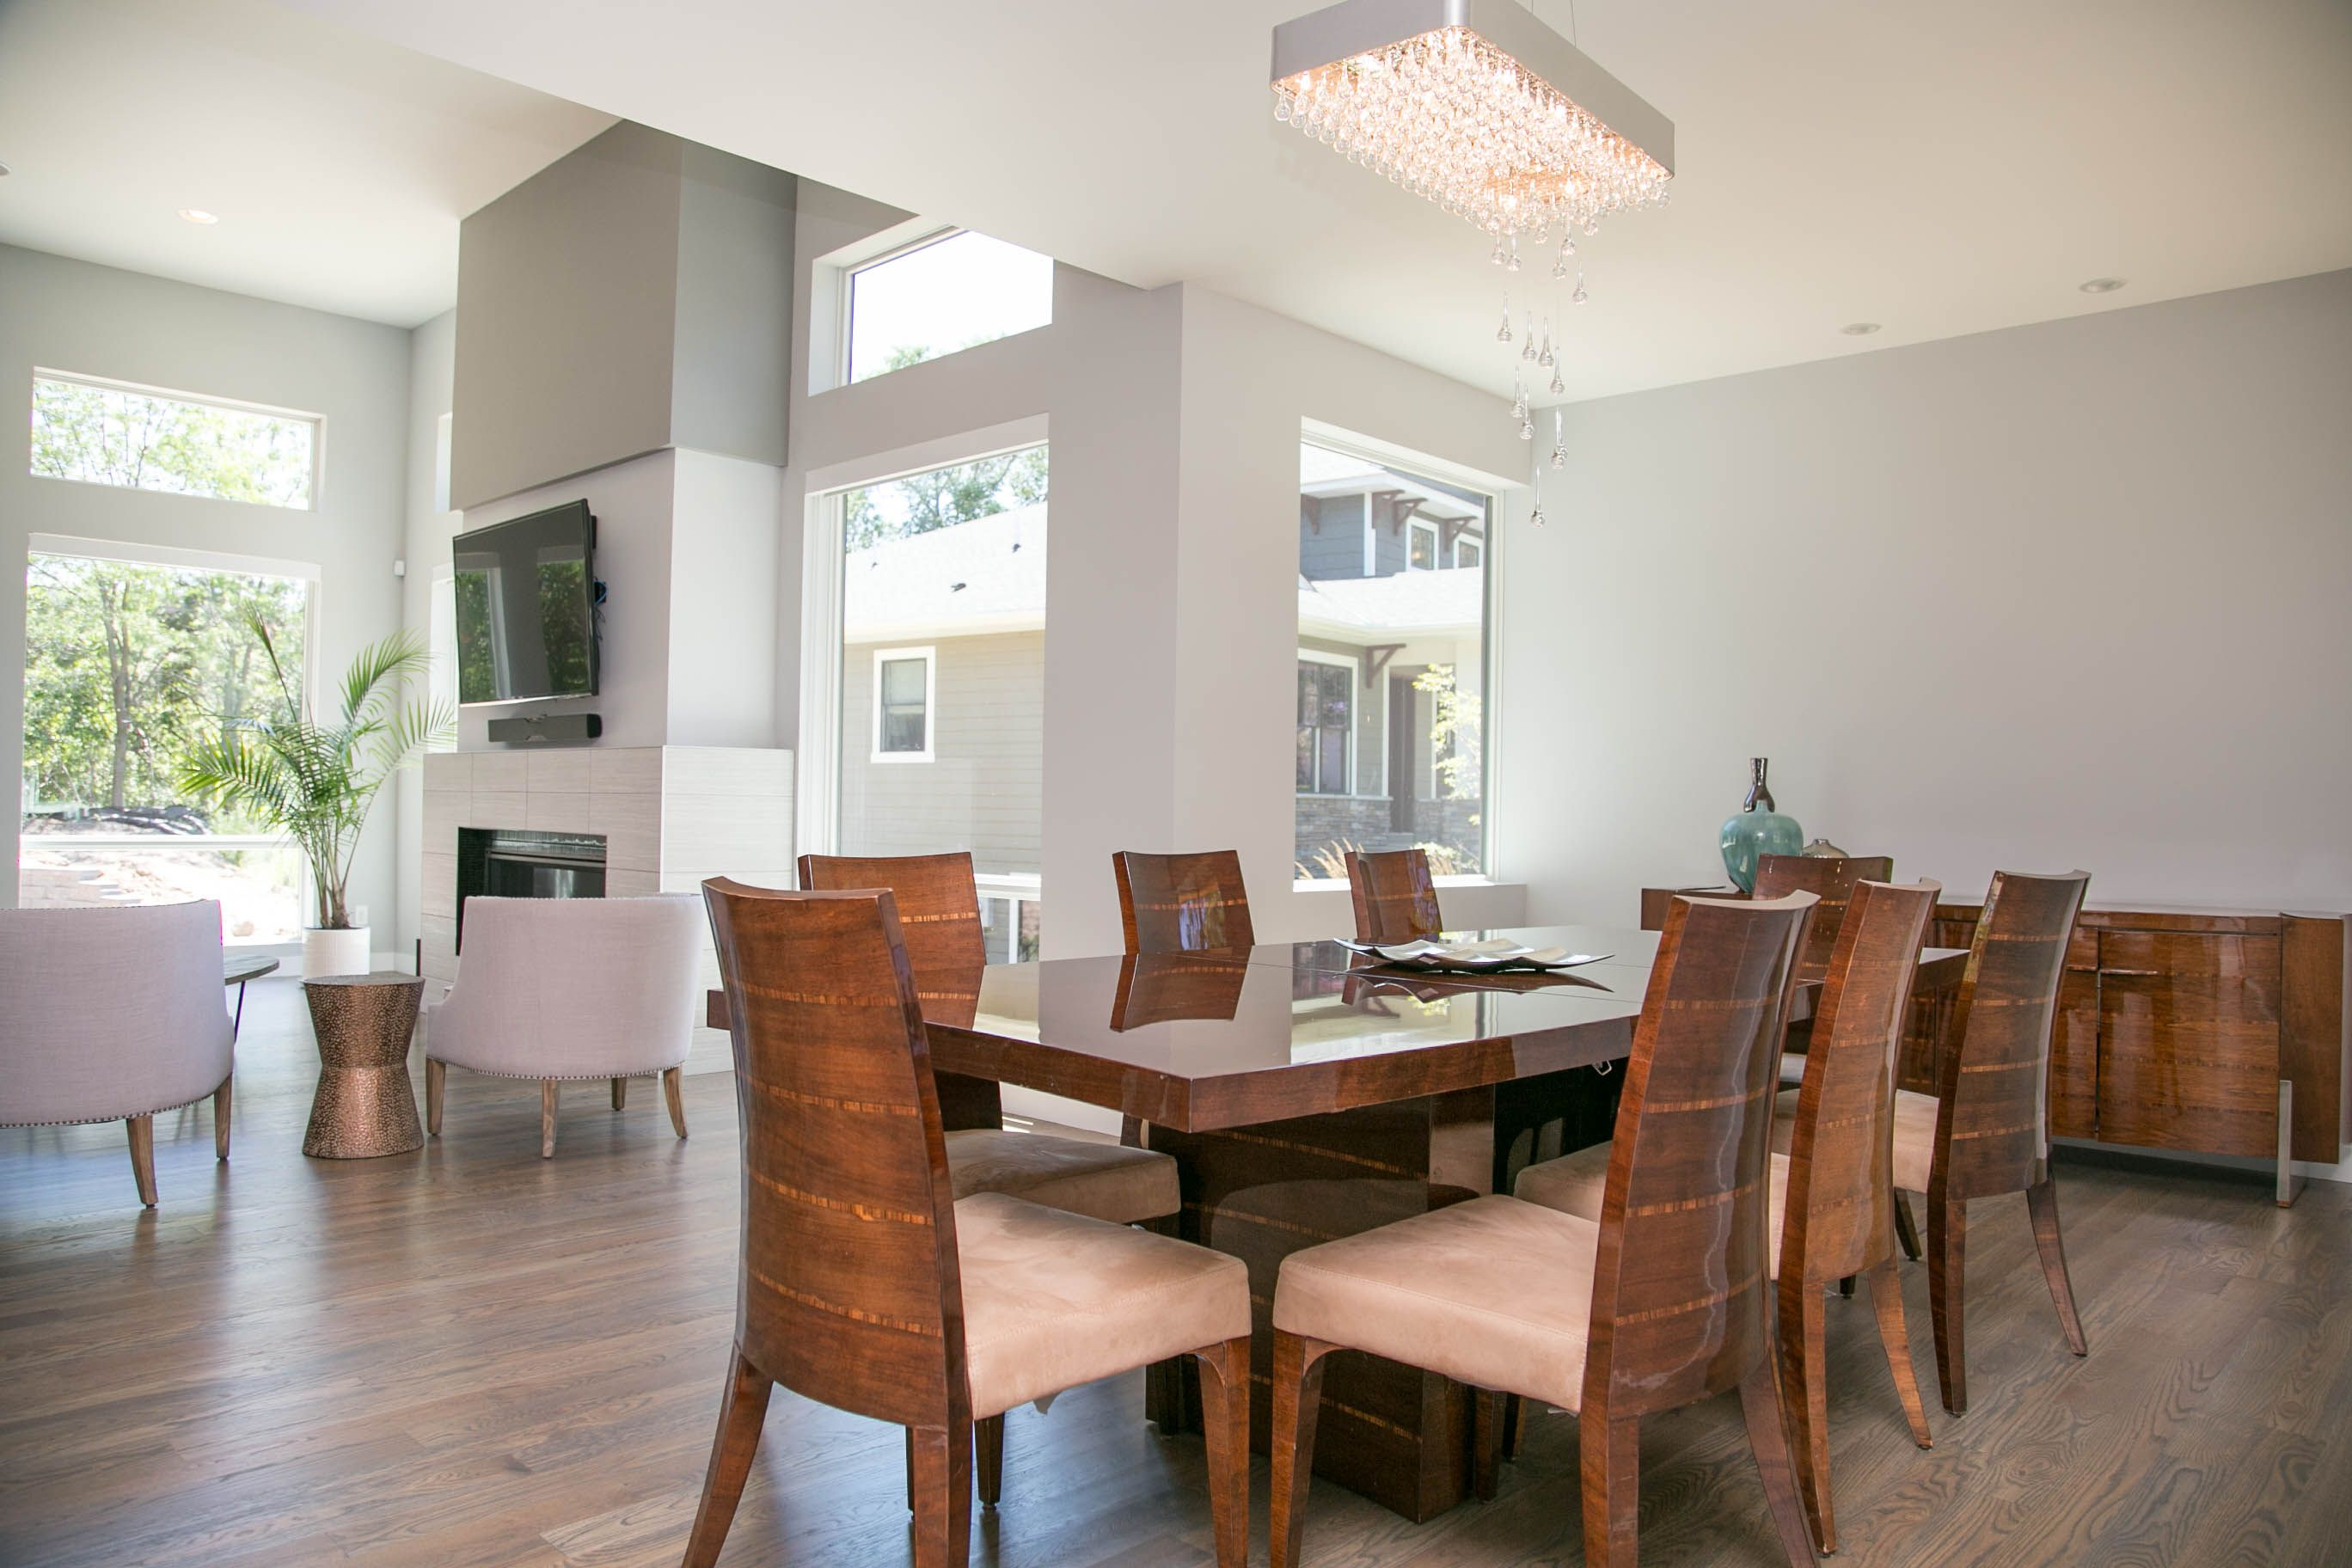 This dining room fixture is available at https:/